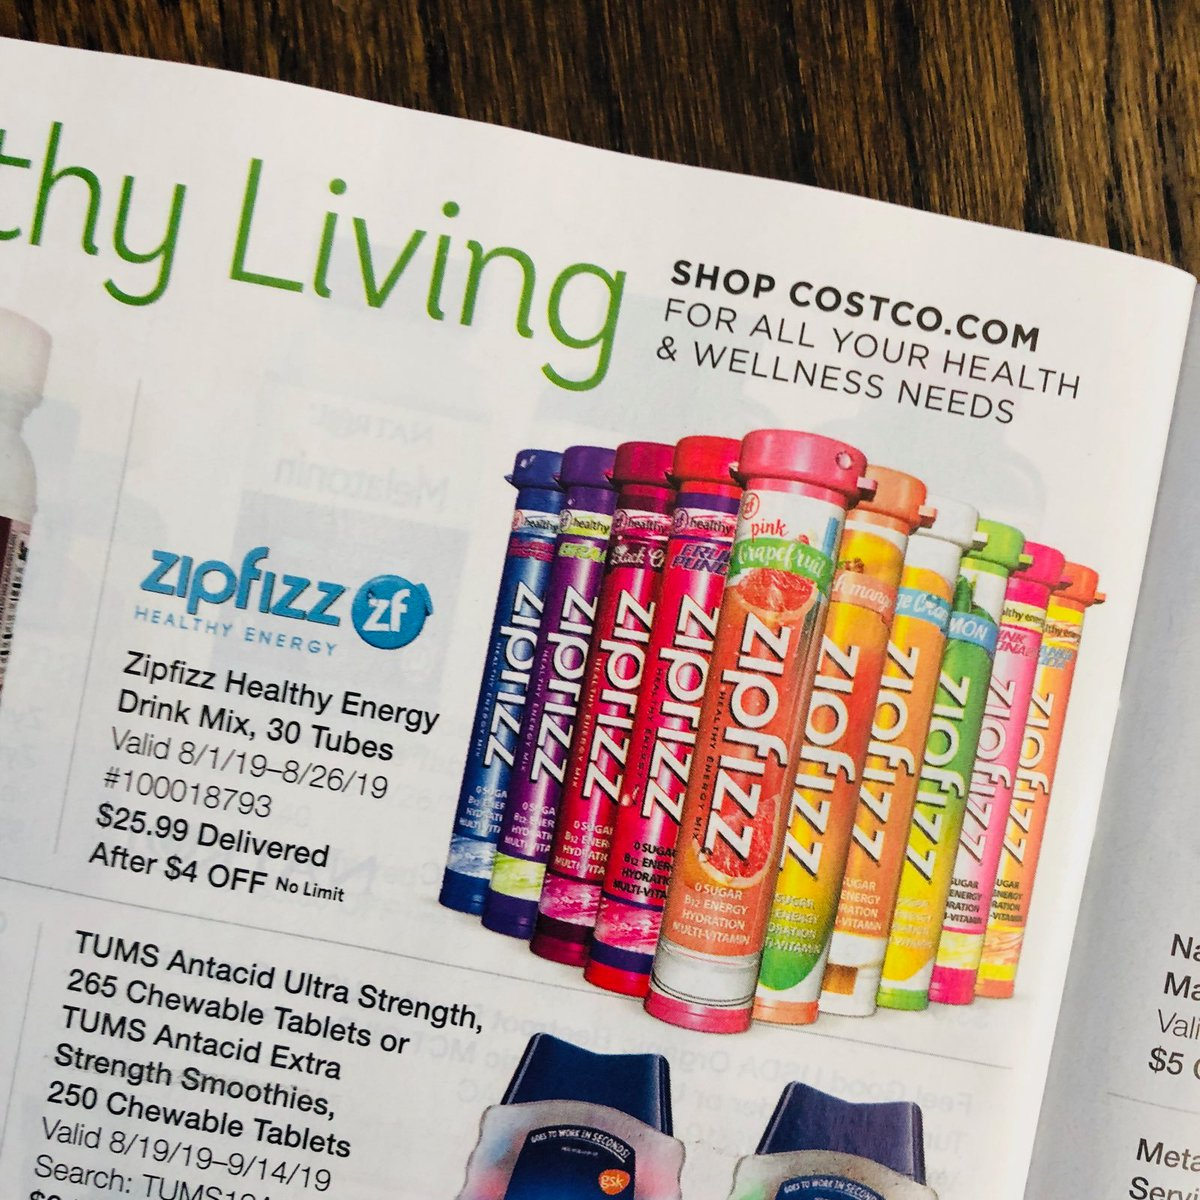 zipfizz on Twitter: